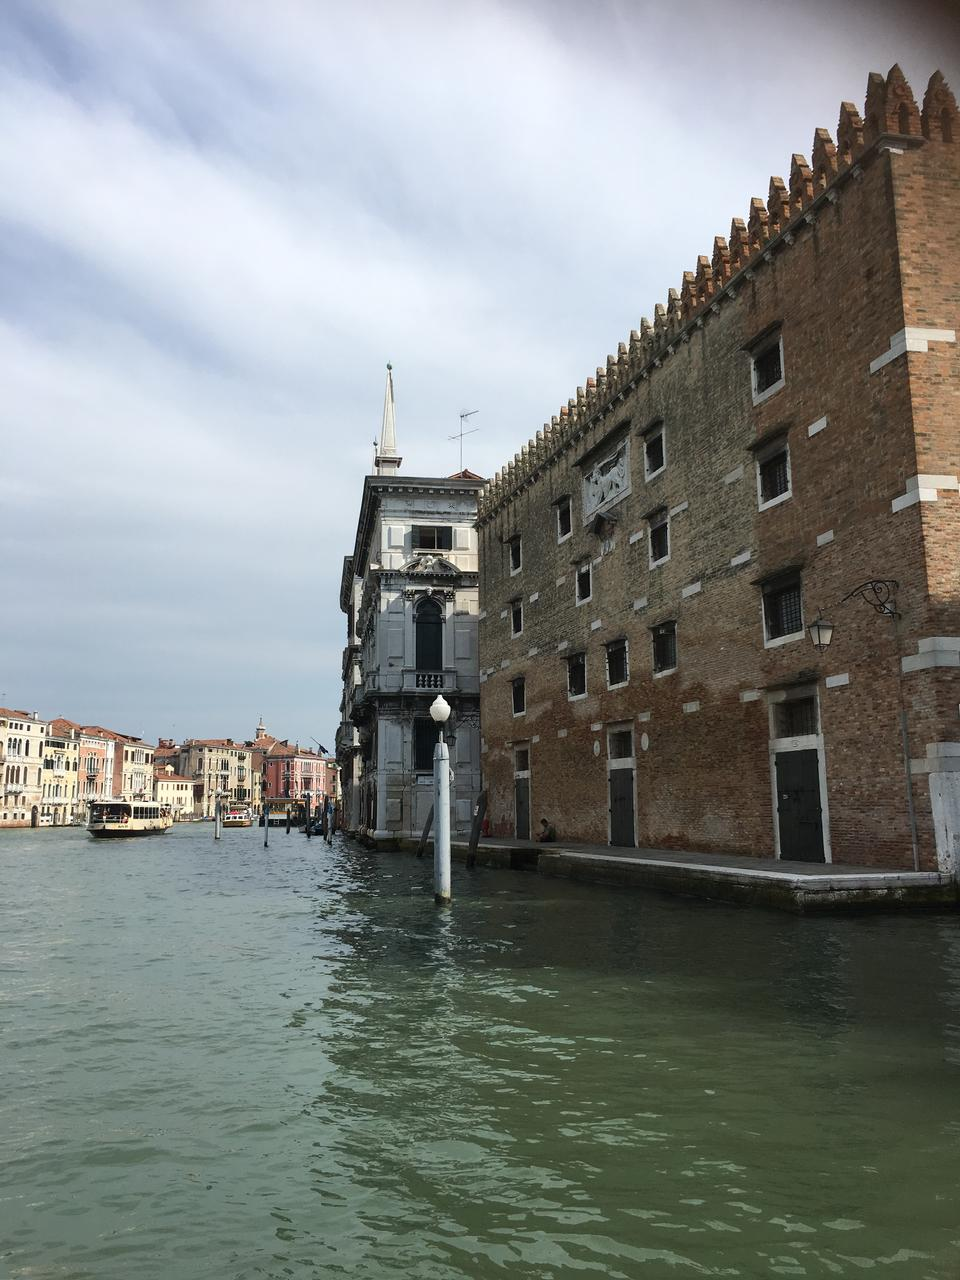 Landscape of Grand Canal Venice Italy